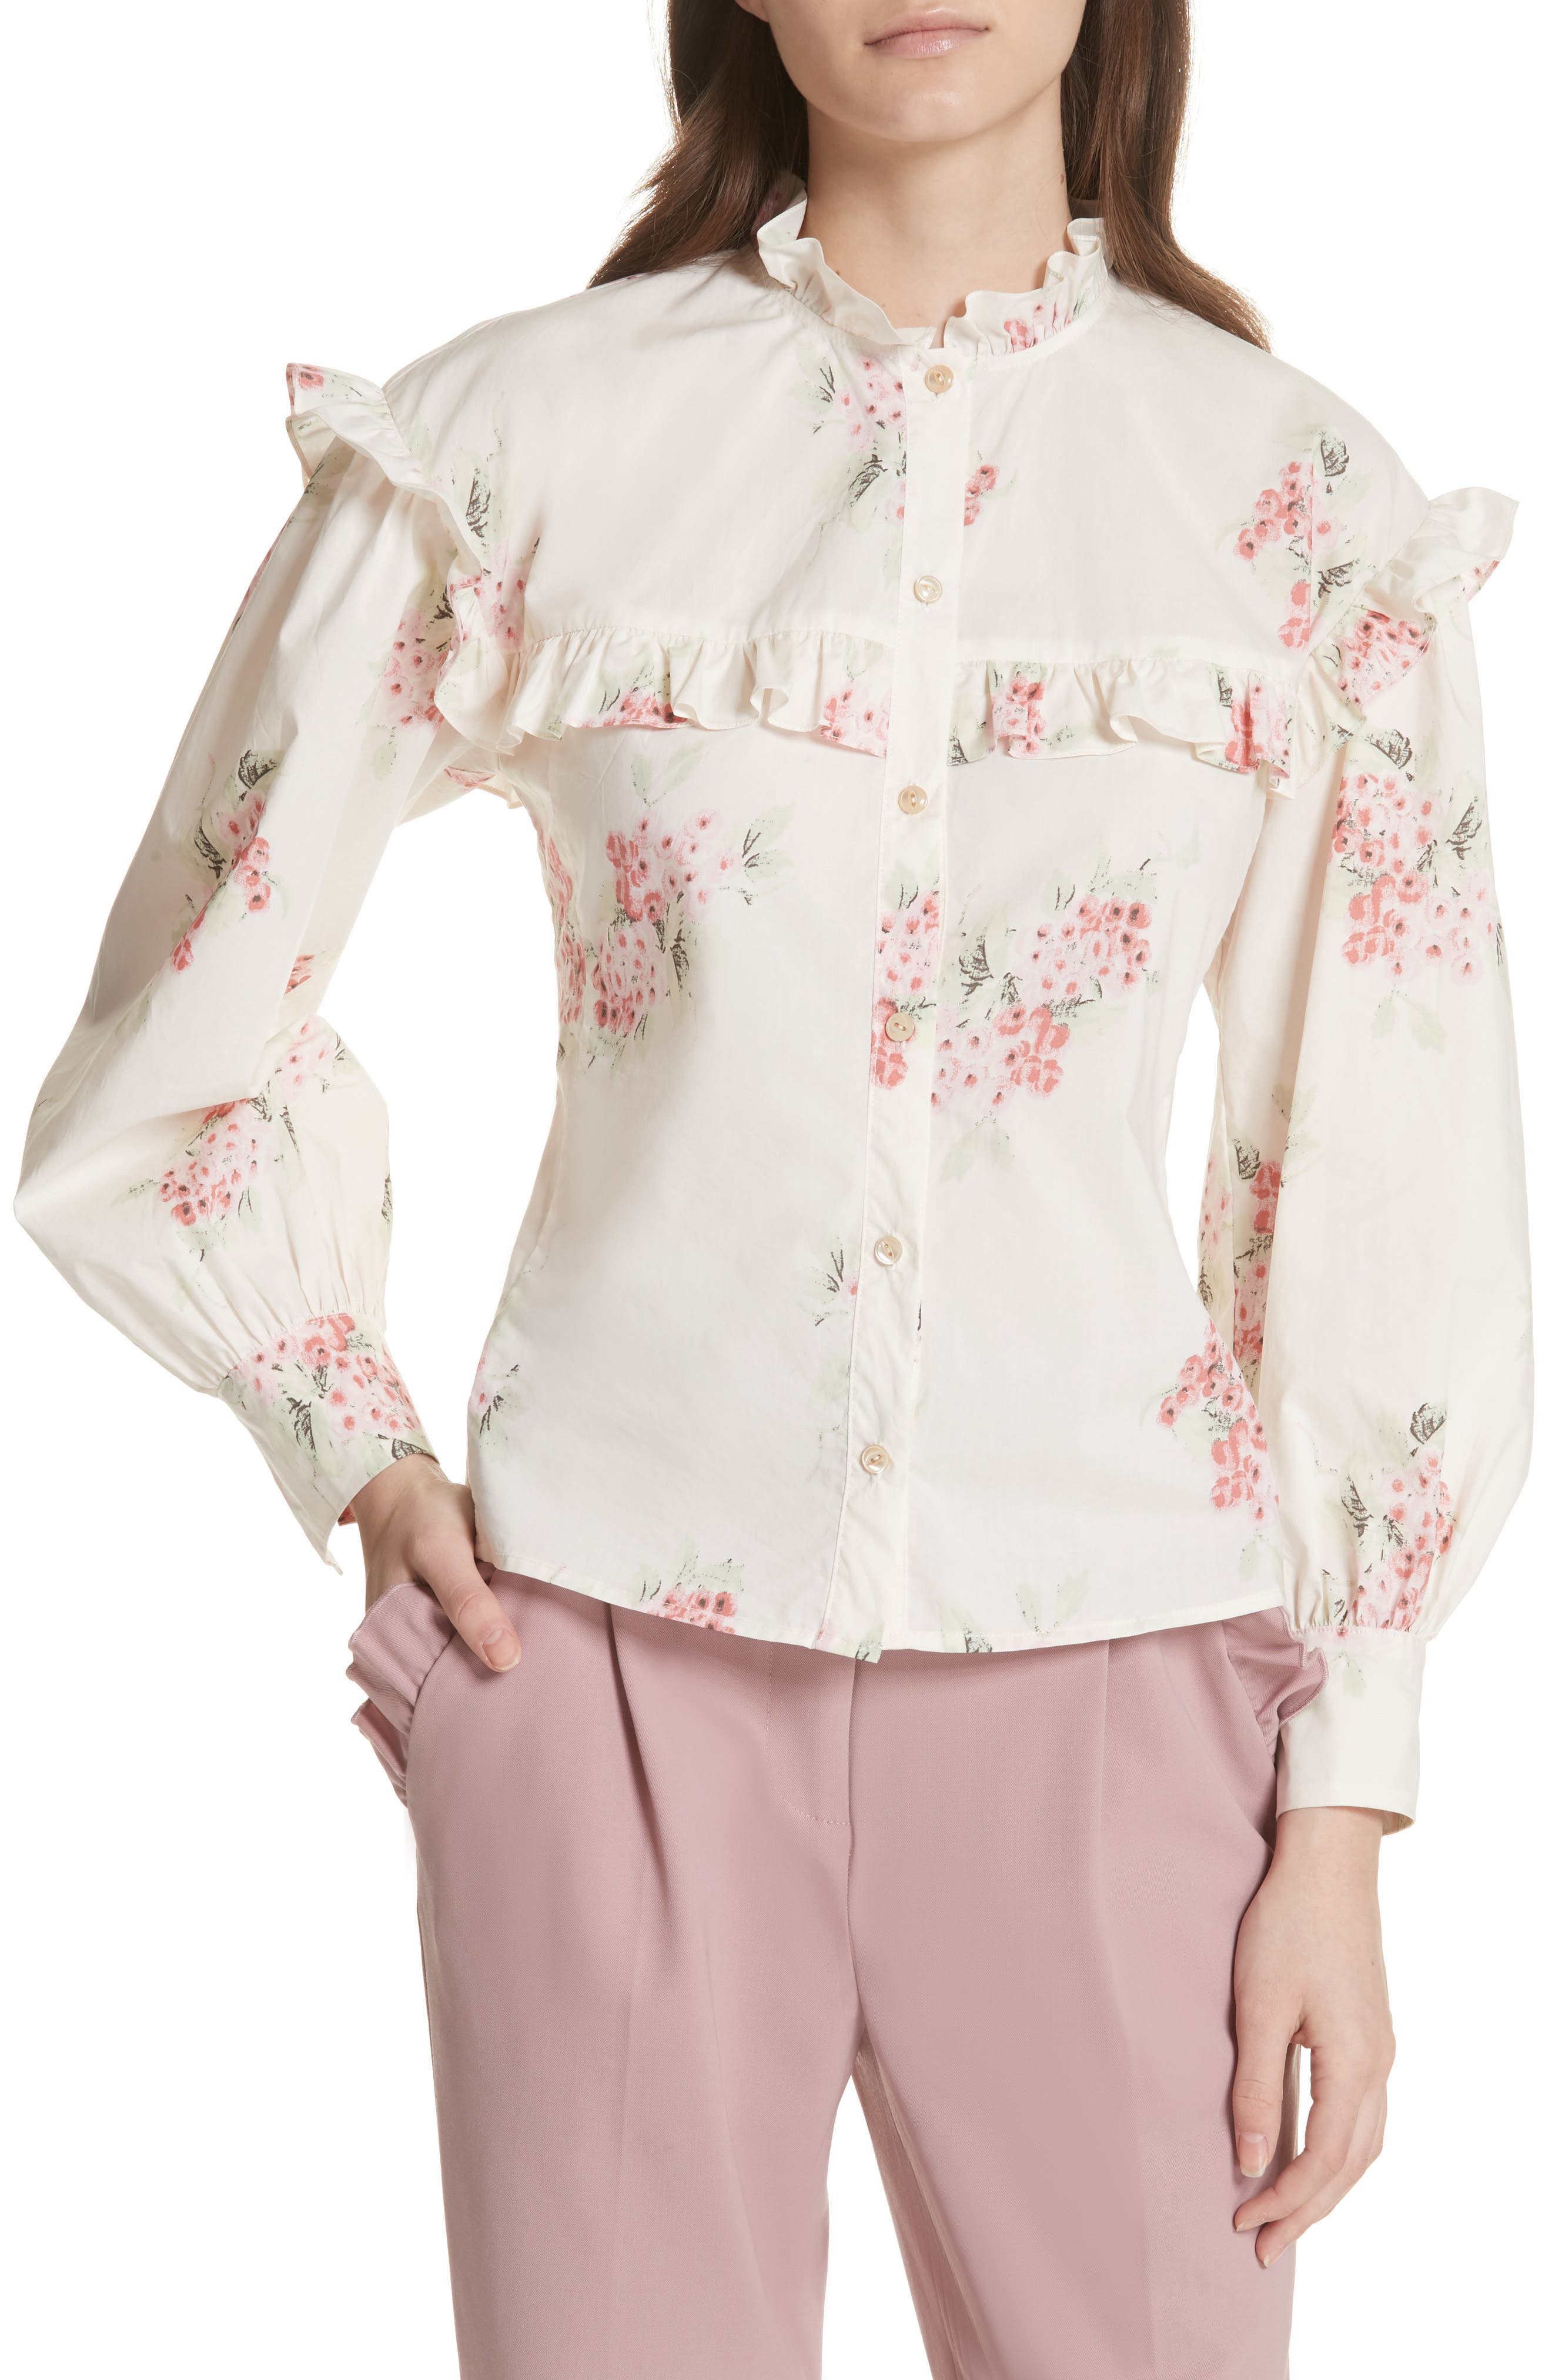 Maia Ruffled Floral Top,                         Main,                         color, 901